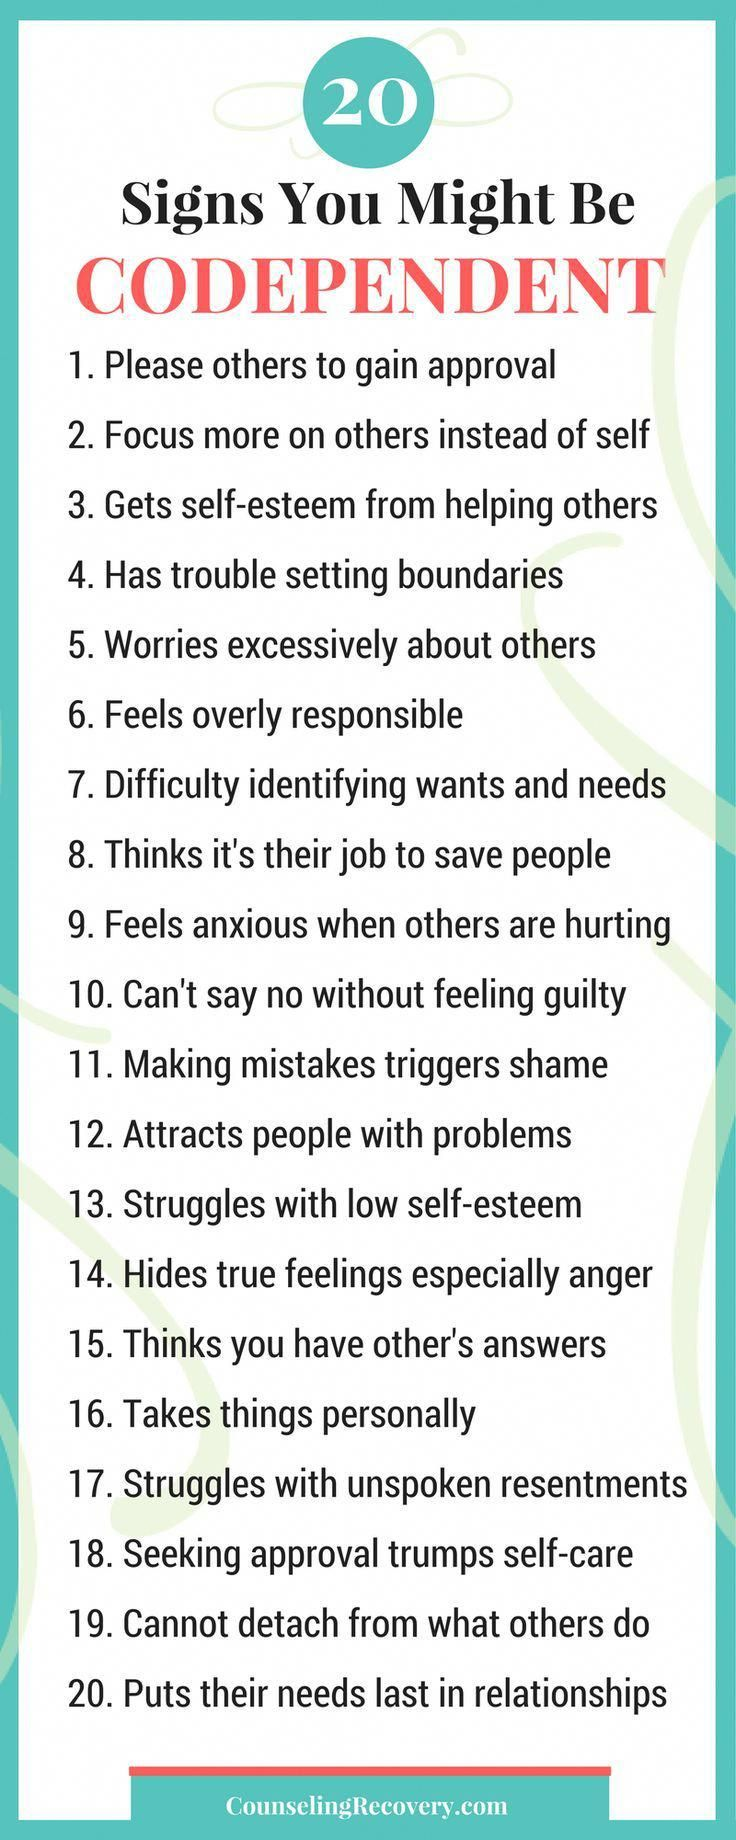 Symptoms of a codependent relationship